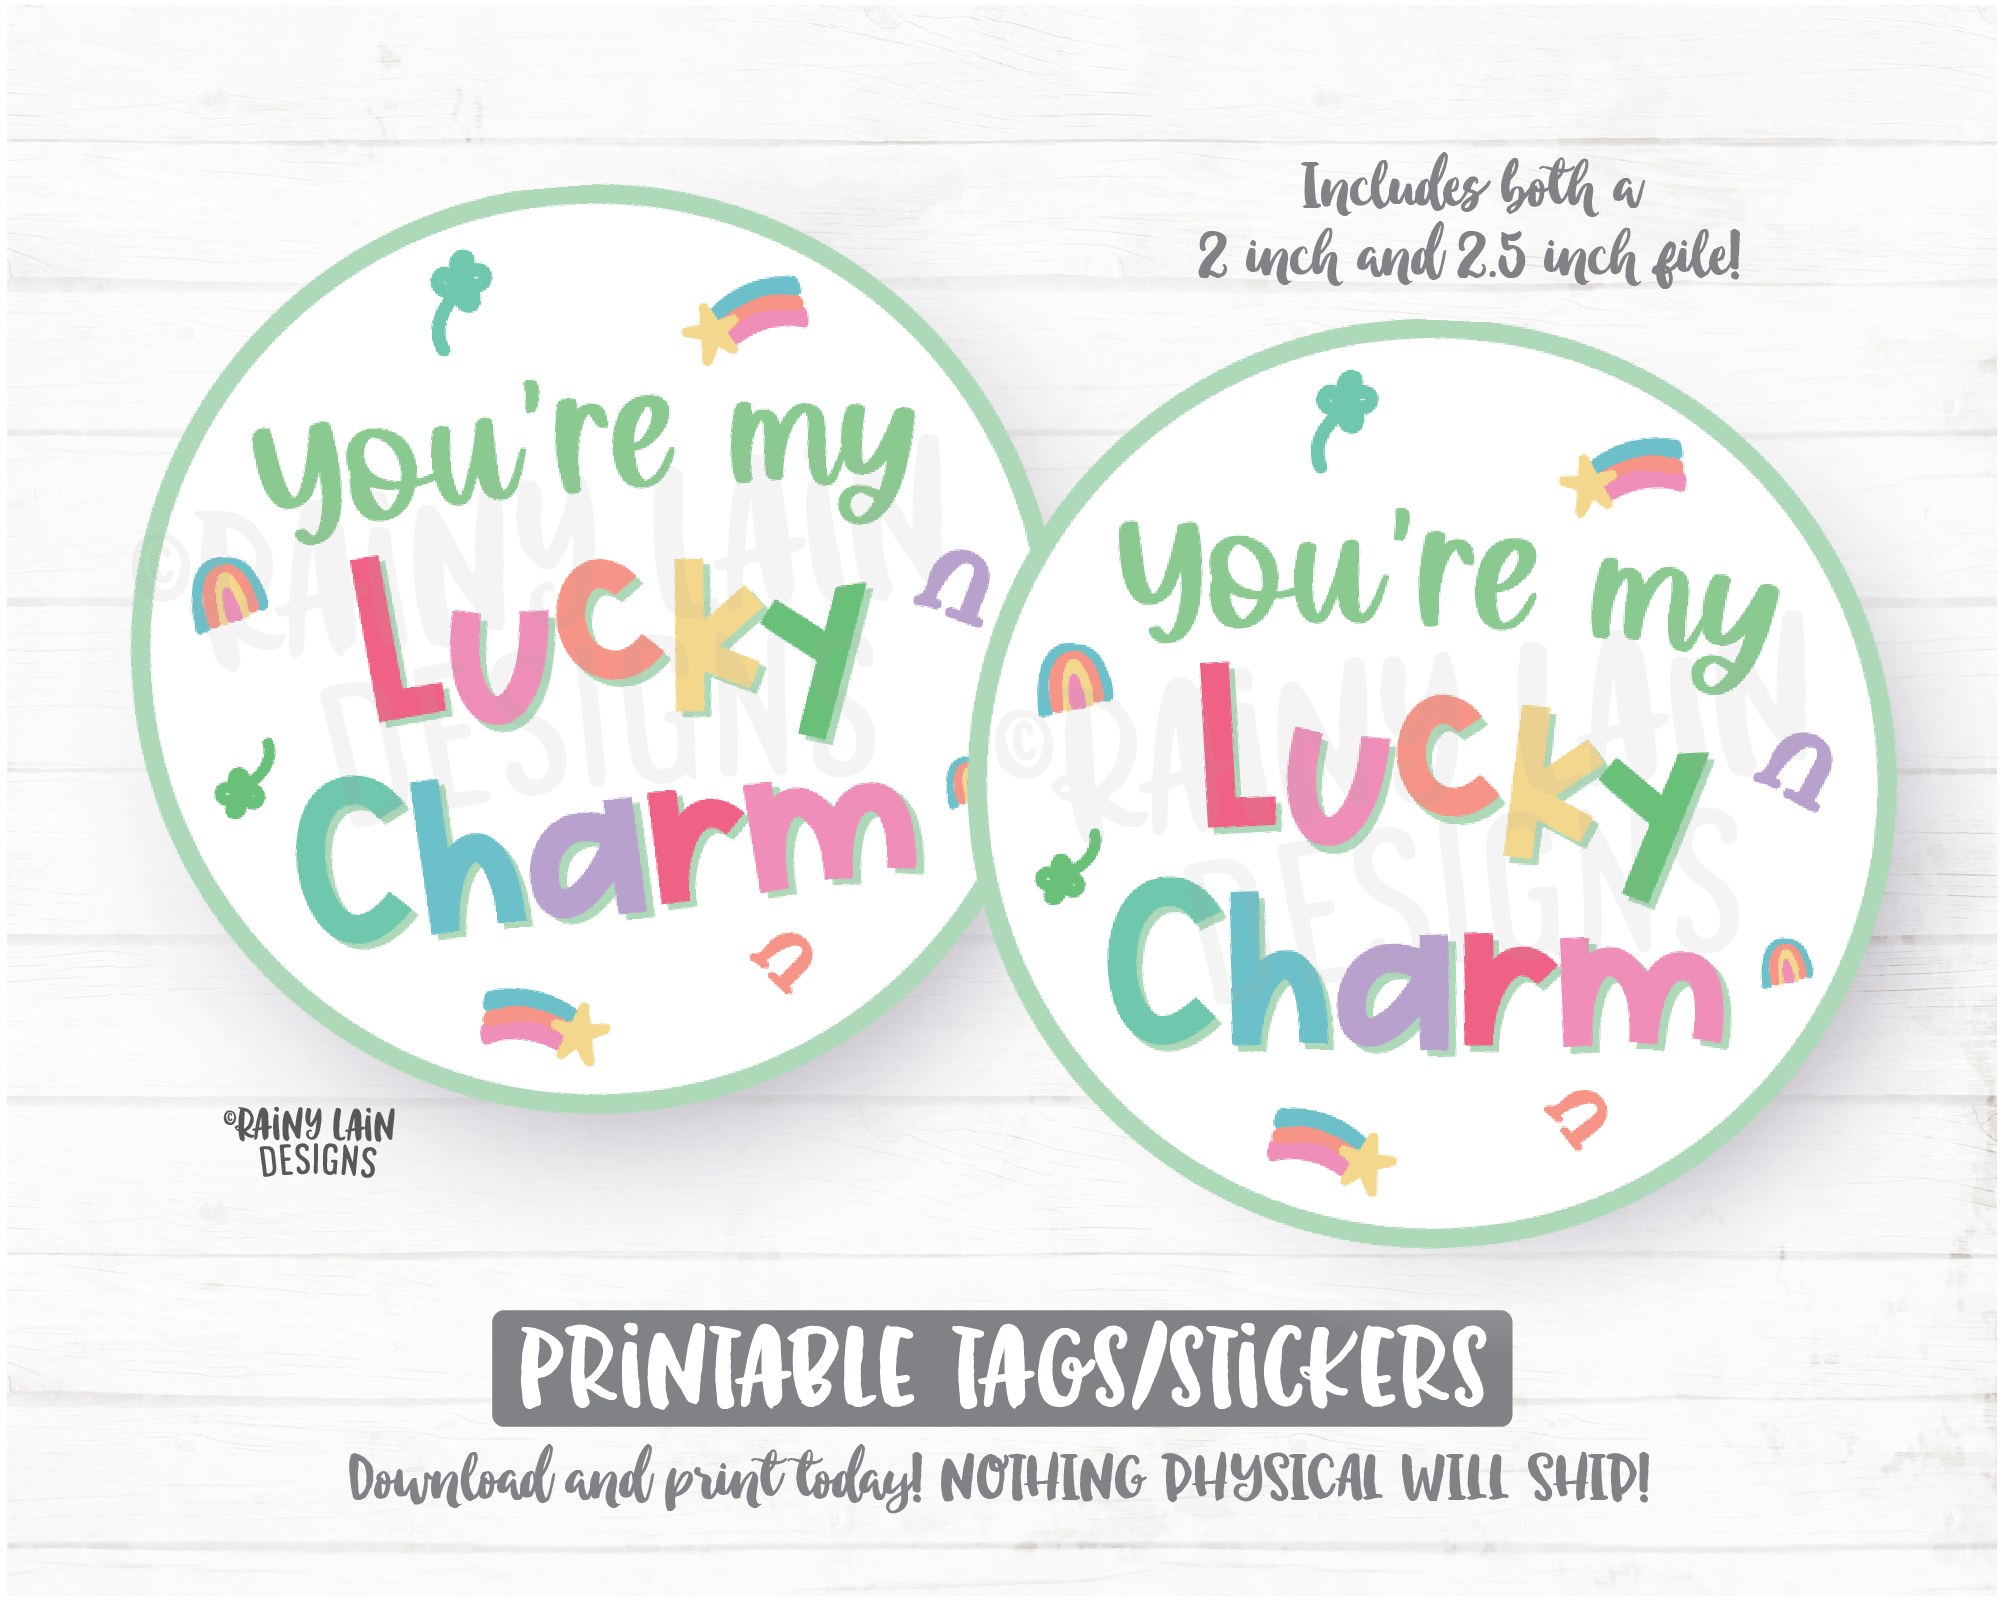 You're my lucky Charm Tag, Happy St Patrick's Day Tag, Printable Cookie Tag Round Tag 2 inch circle tag, Cookie Card Instant Download Bakery - St Patrick's Day Cookie Packaging